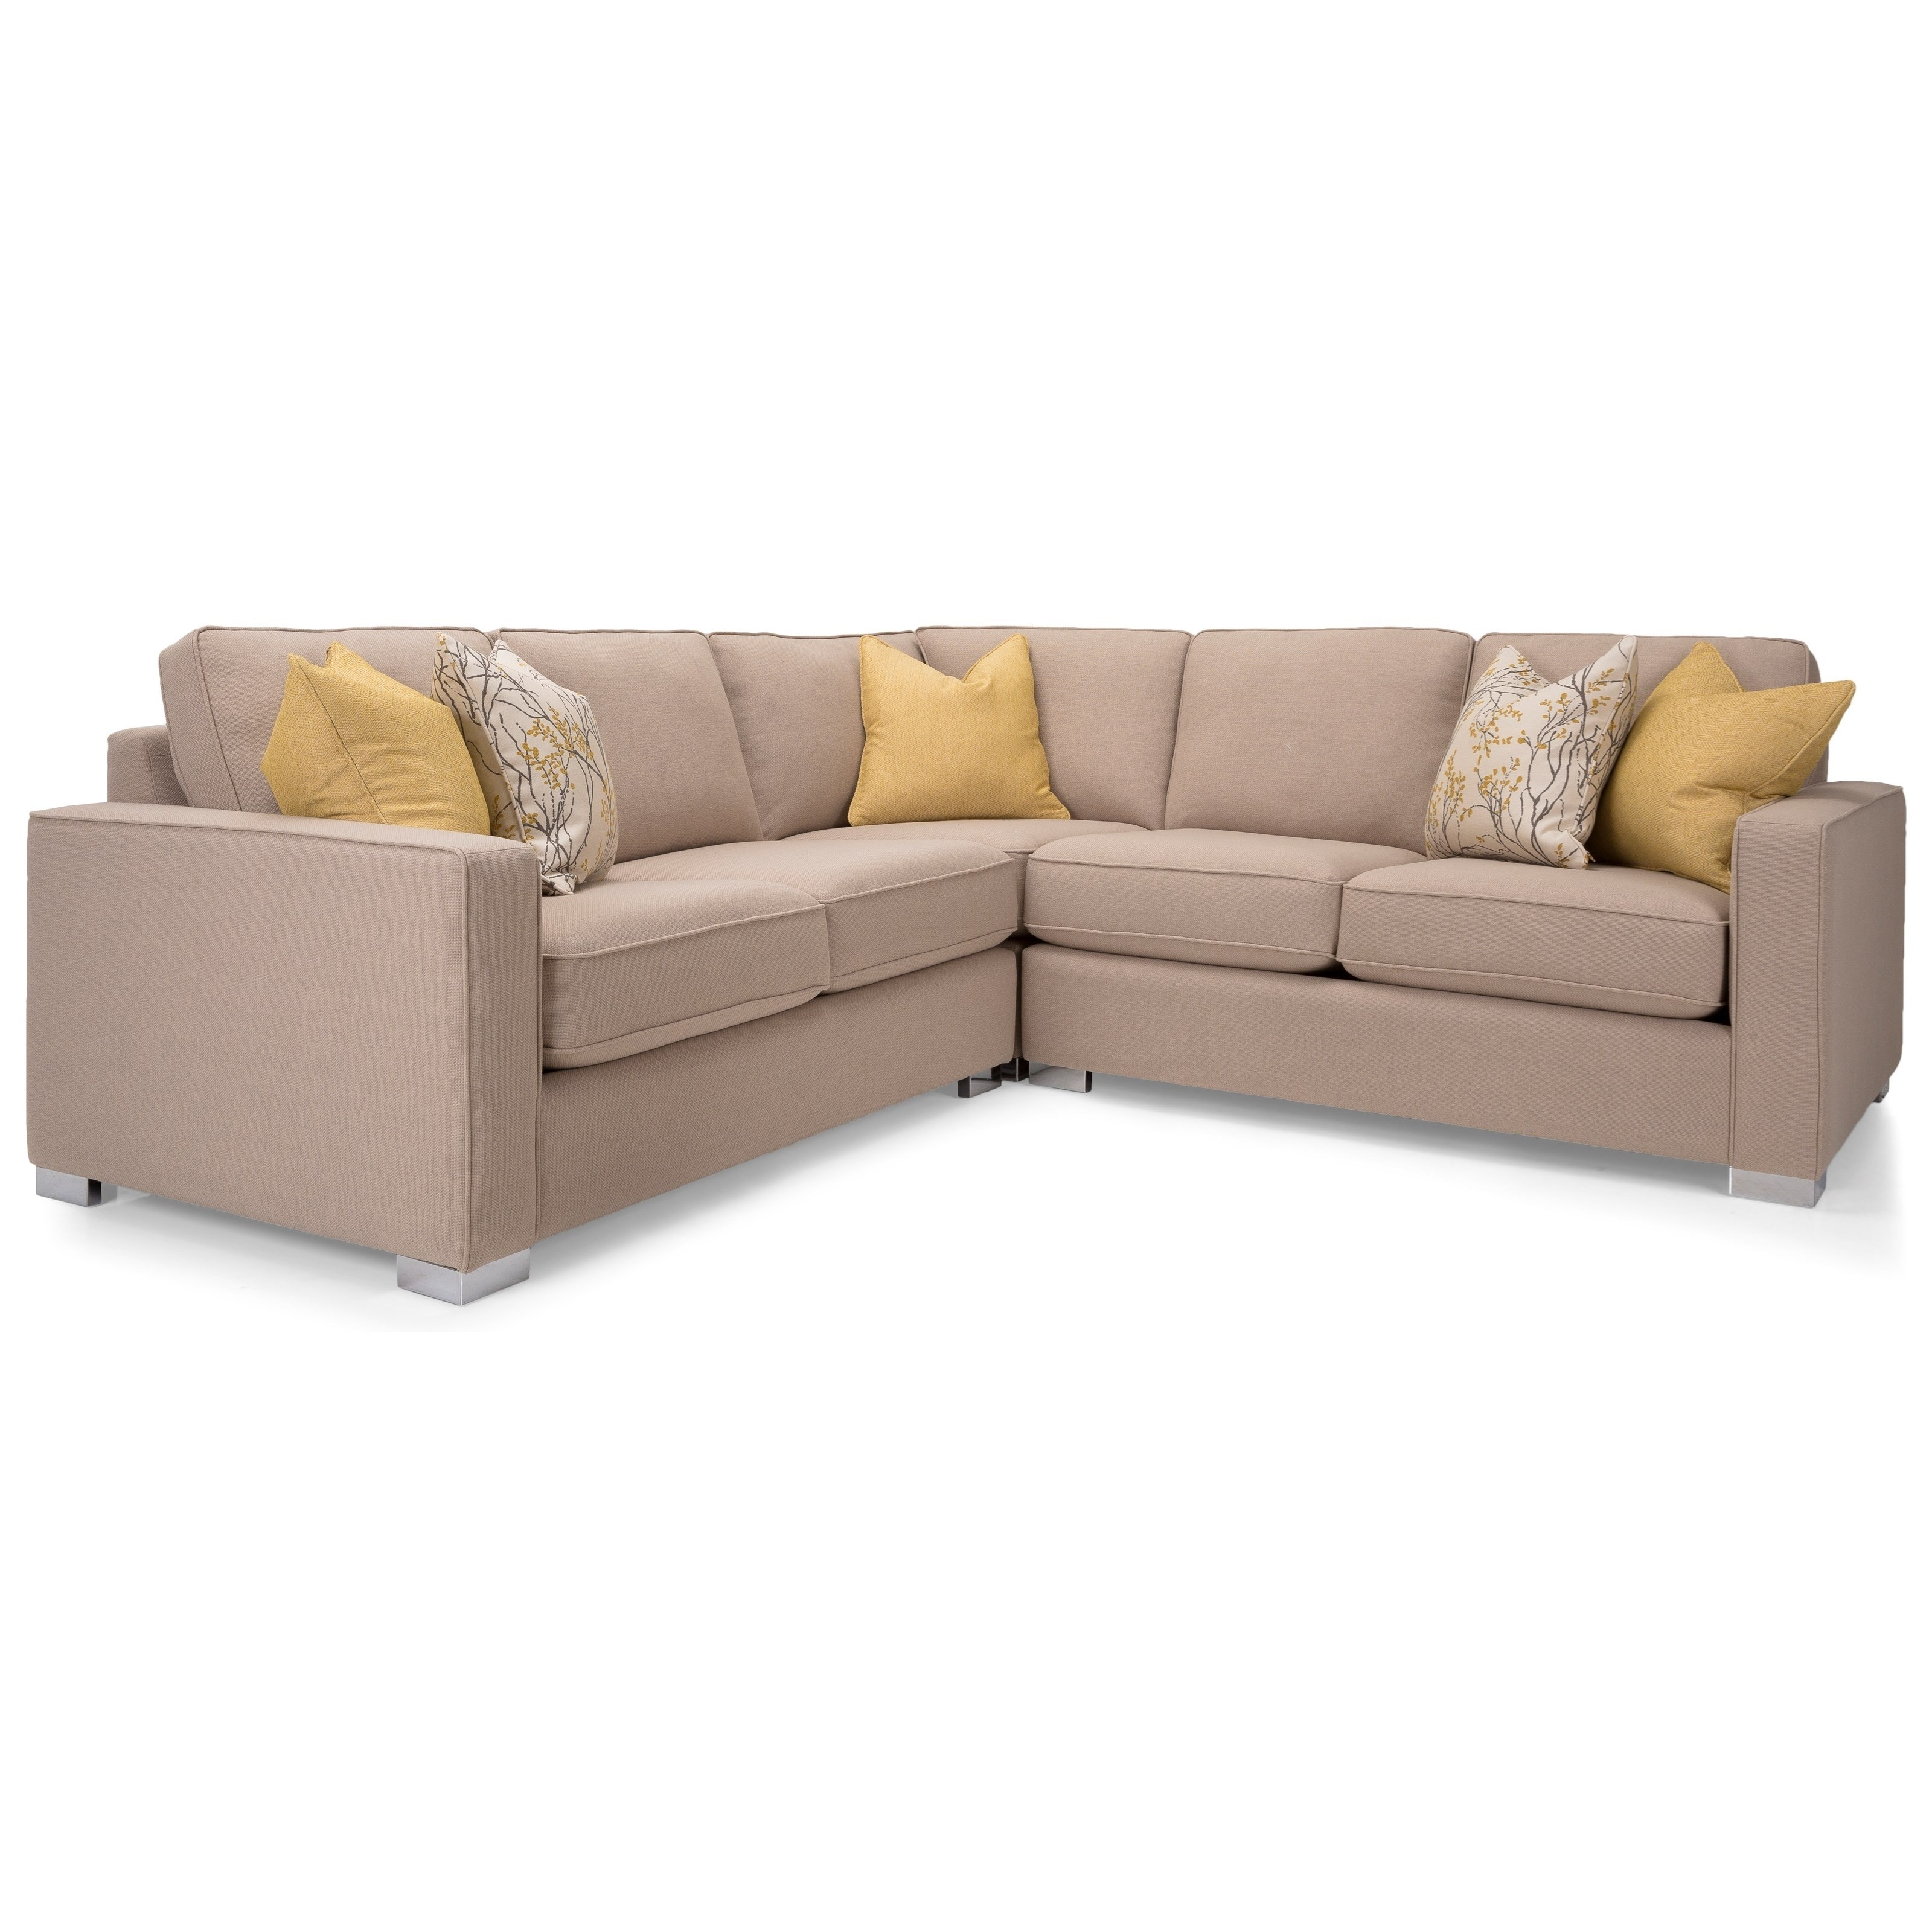 Decor-Rest 7743 Three Piece Corner Sectional Sofa | Stoney Creek with regard to Sectional Sofas at Brampton (Image 5 of 15)